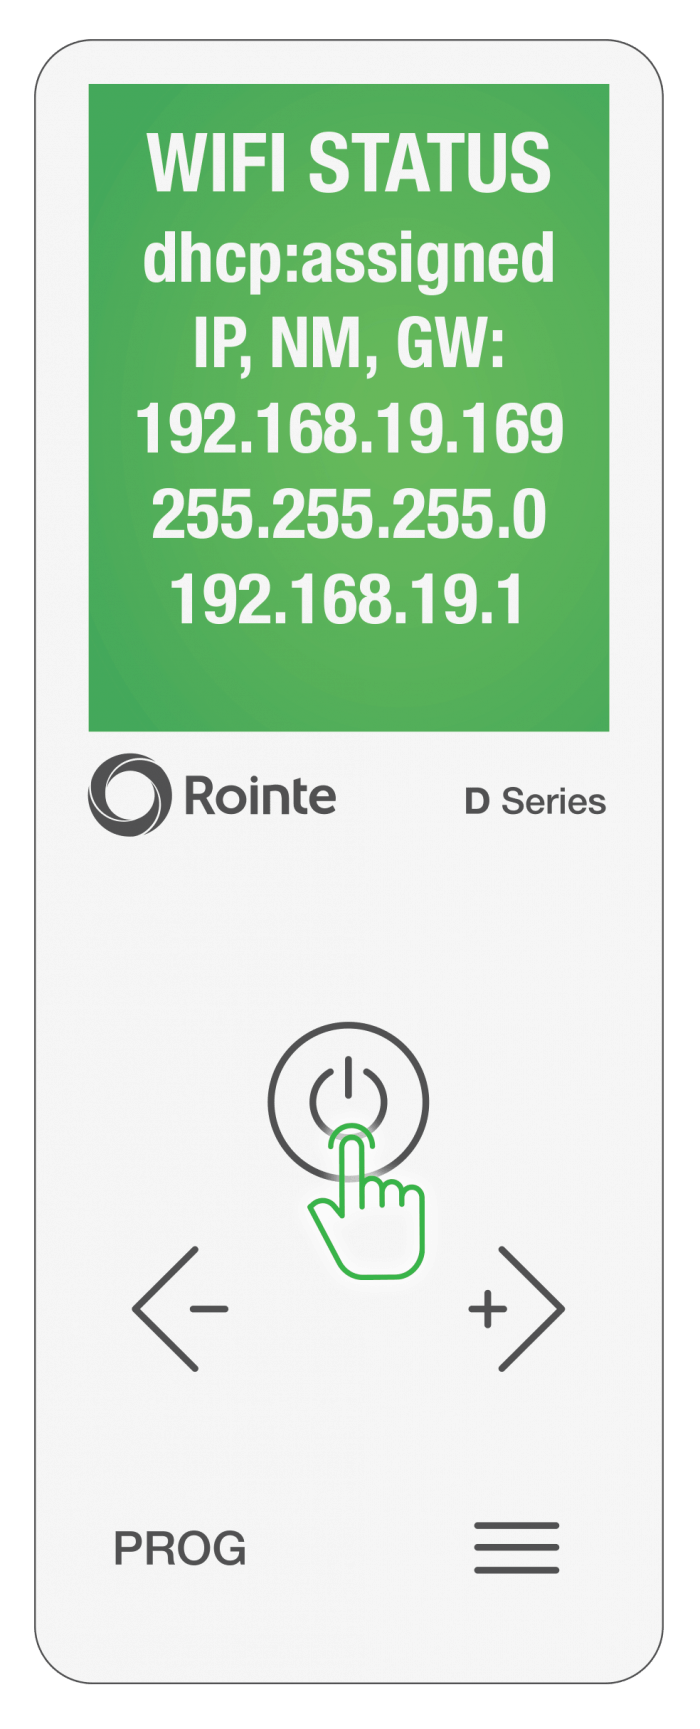 Rointe Connect app firmware/software WiFi information screen 1